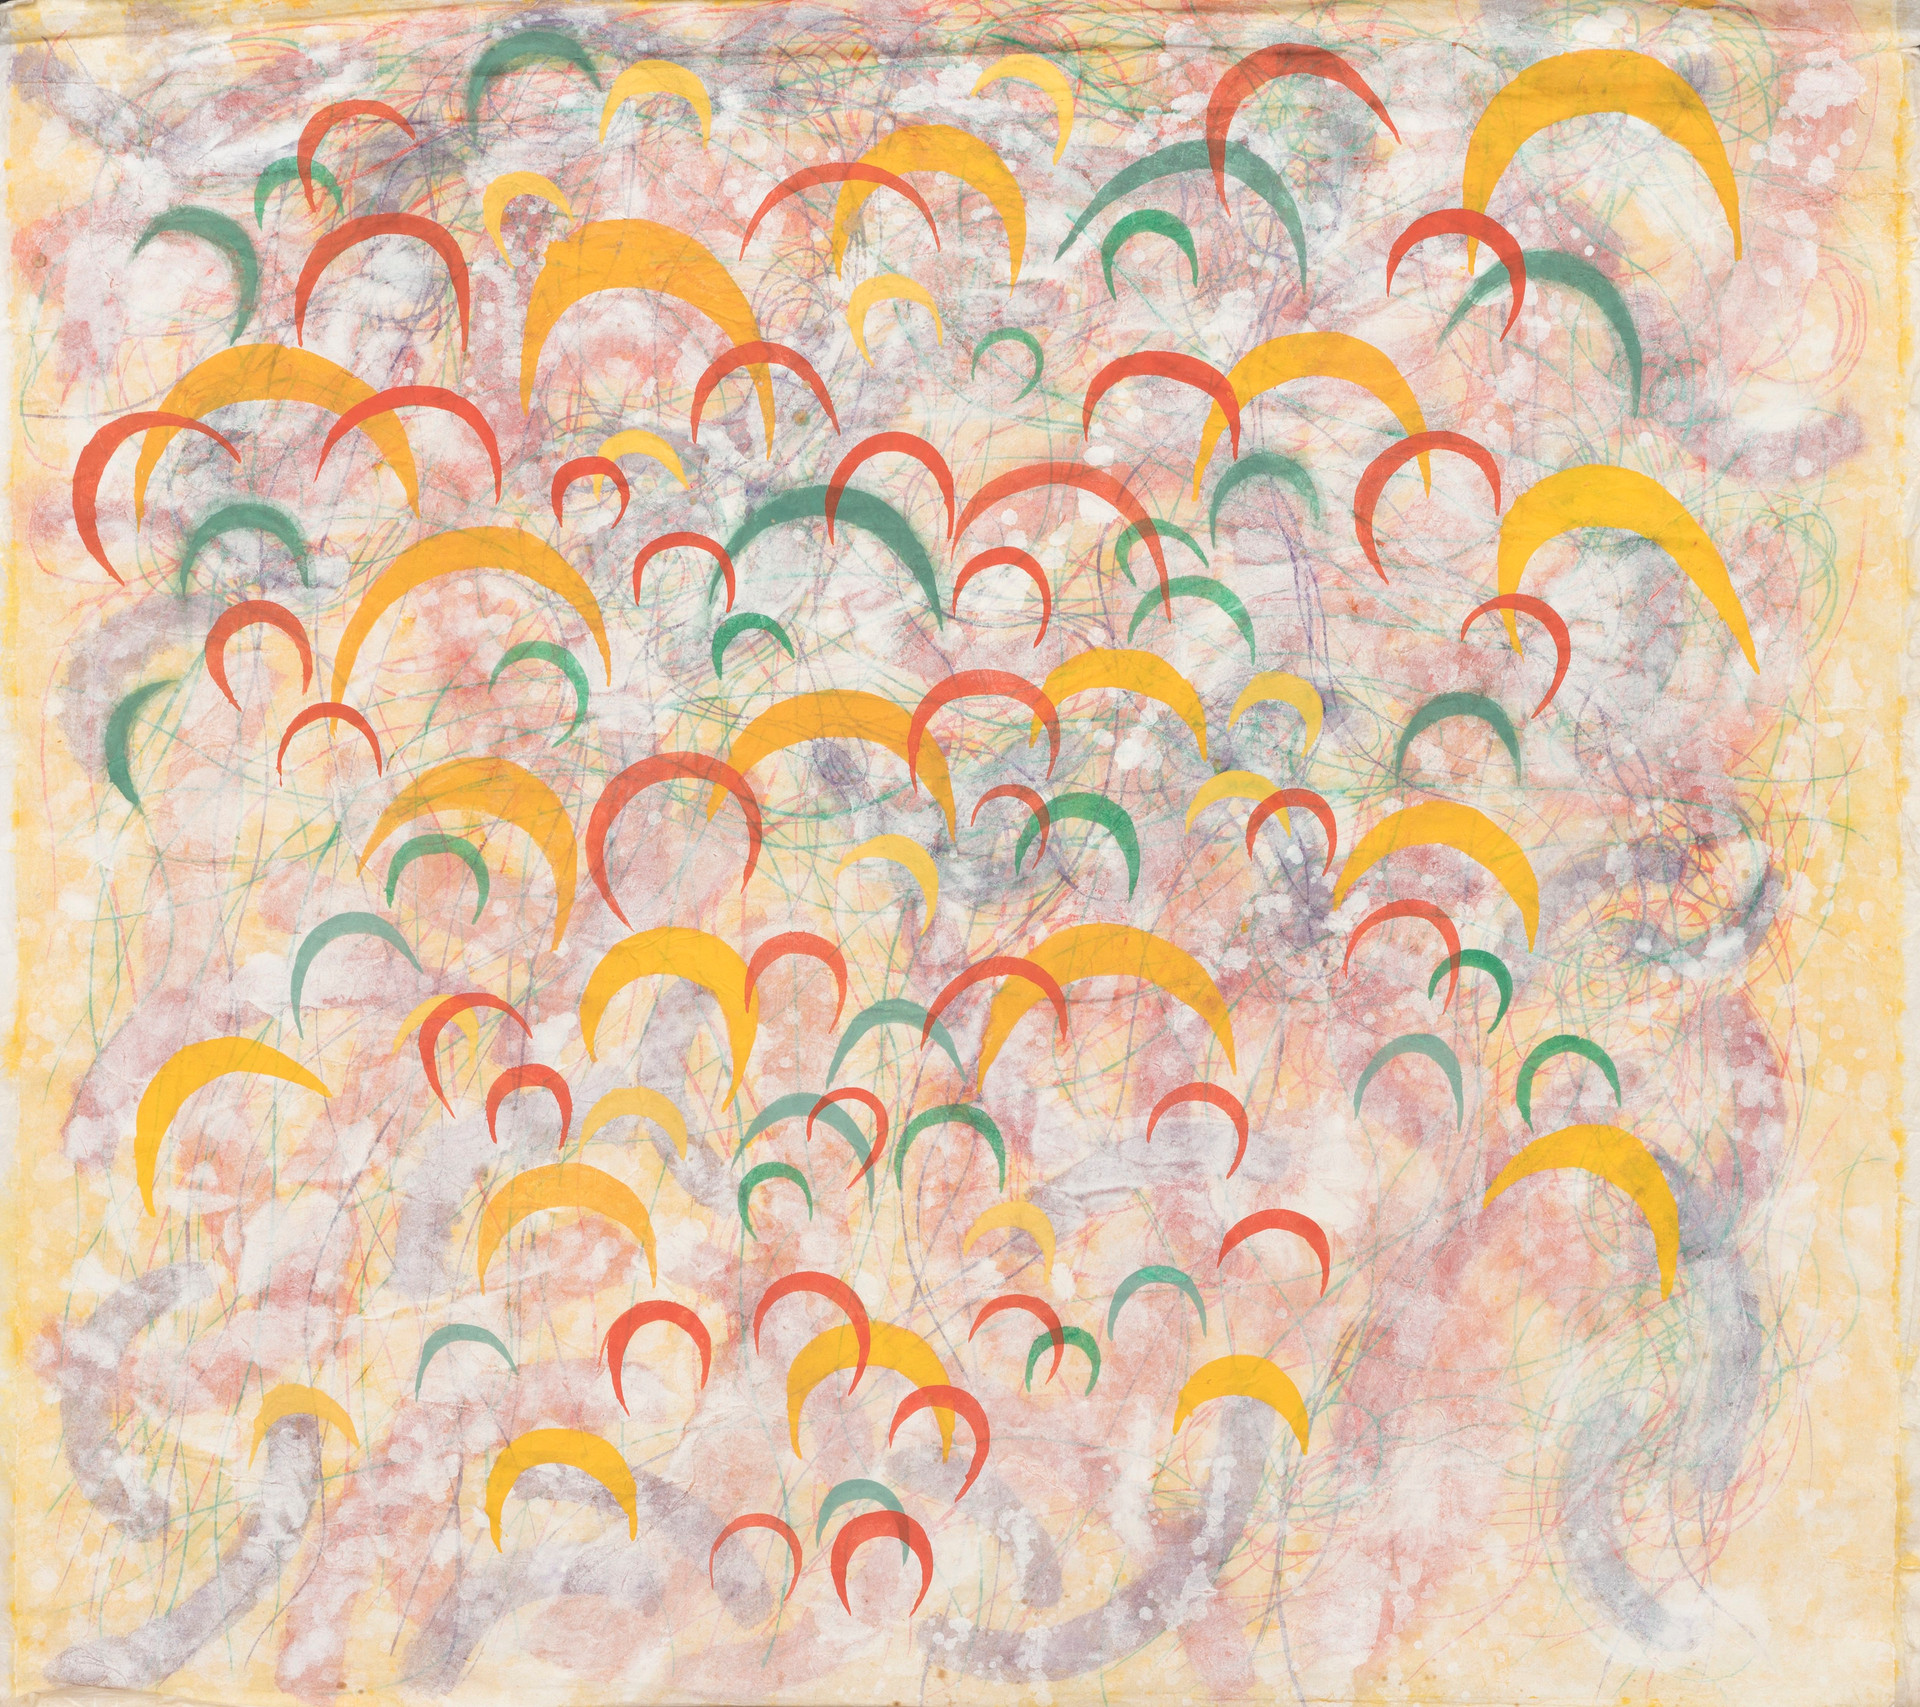 Untitled - red, orange and green crescents on colorful background